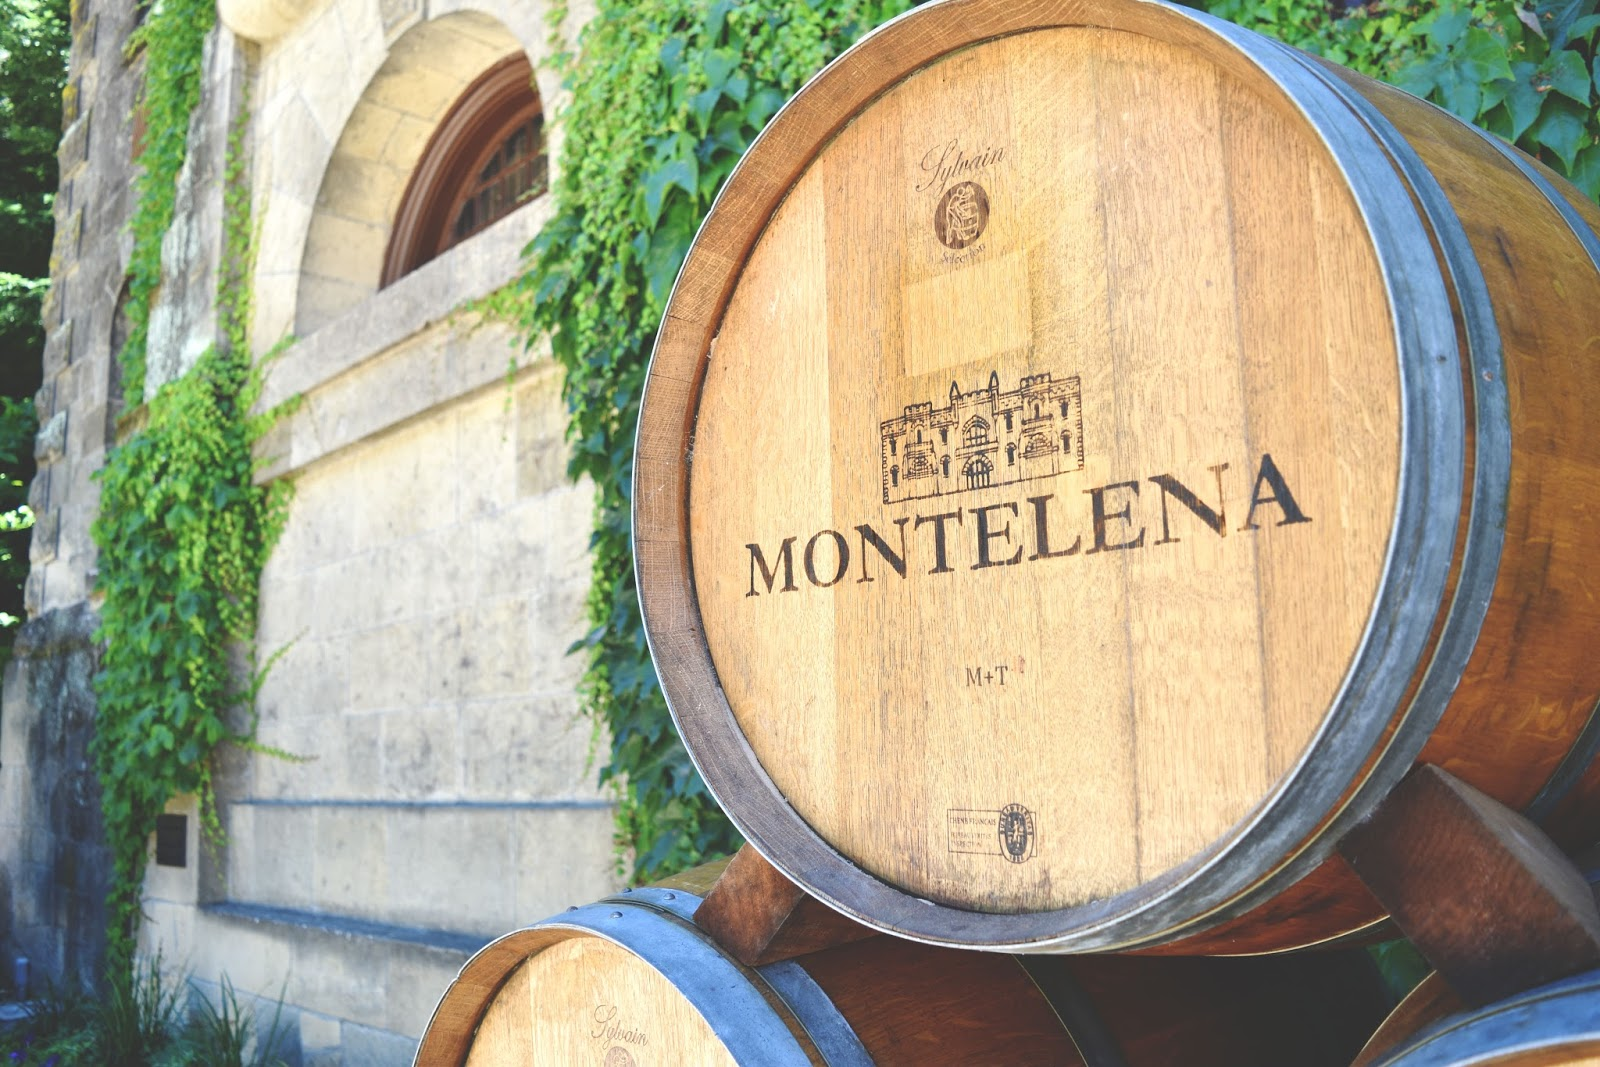 Chateau Montelena - a winery in Napa, California